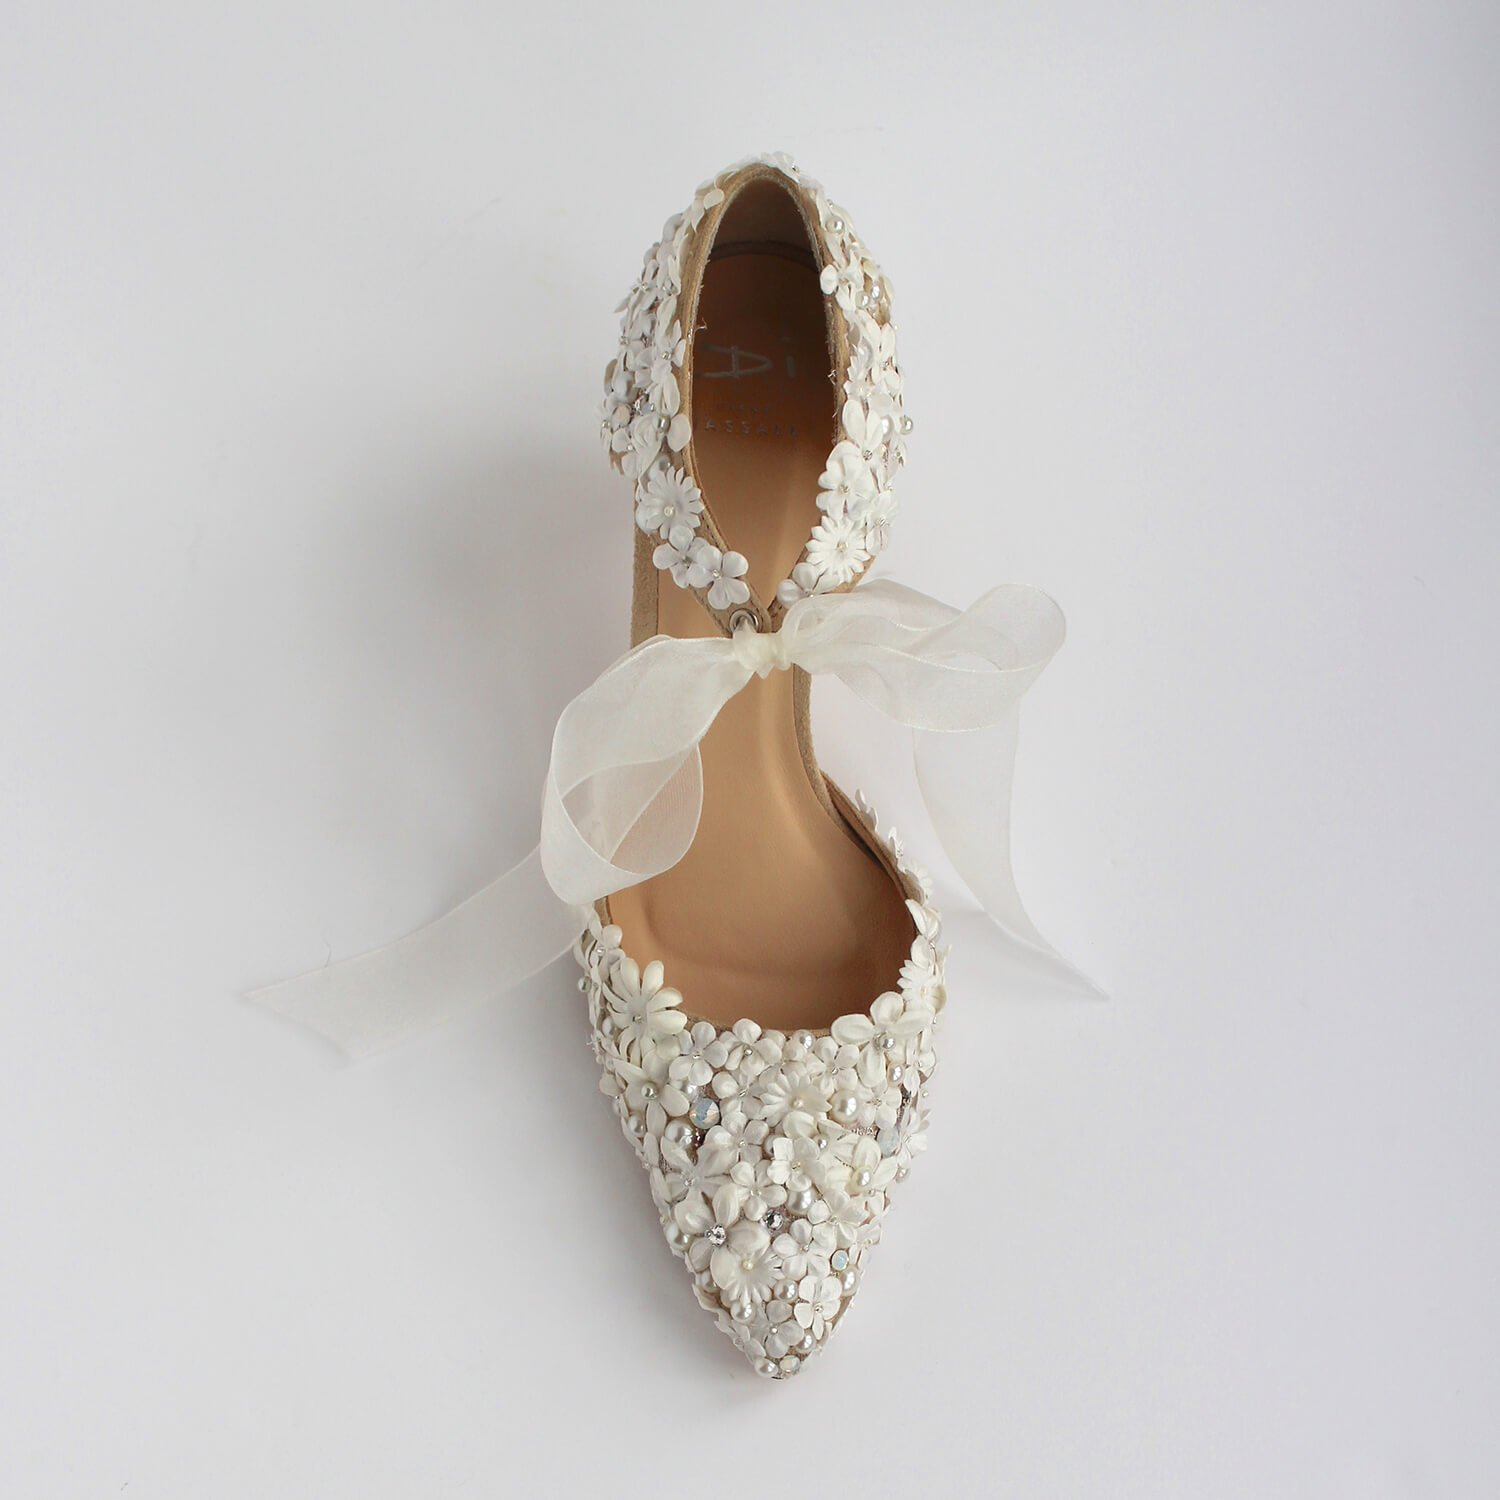 Blush and ivory low heeled wedding shoes with tie front fattening